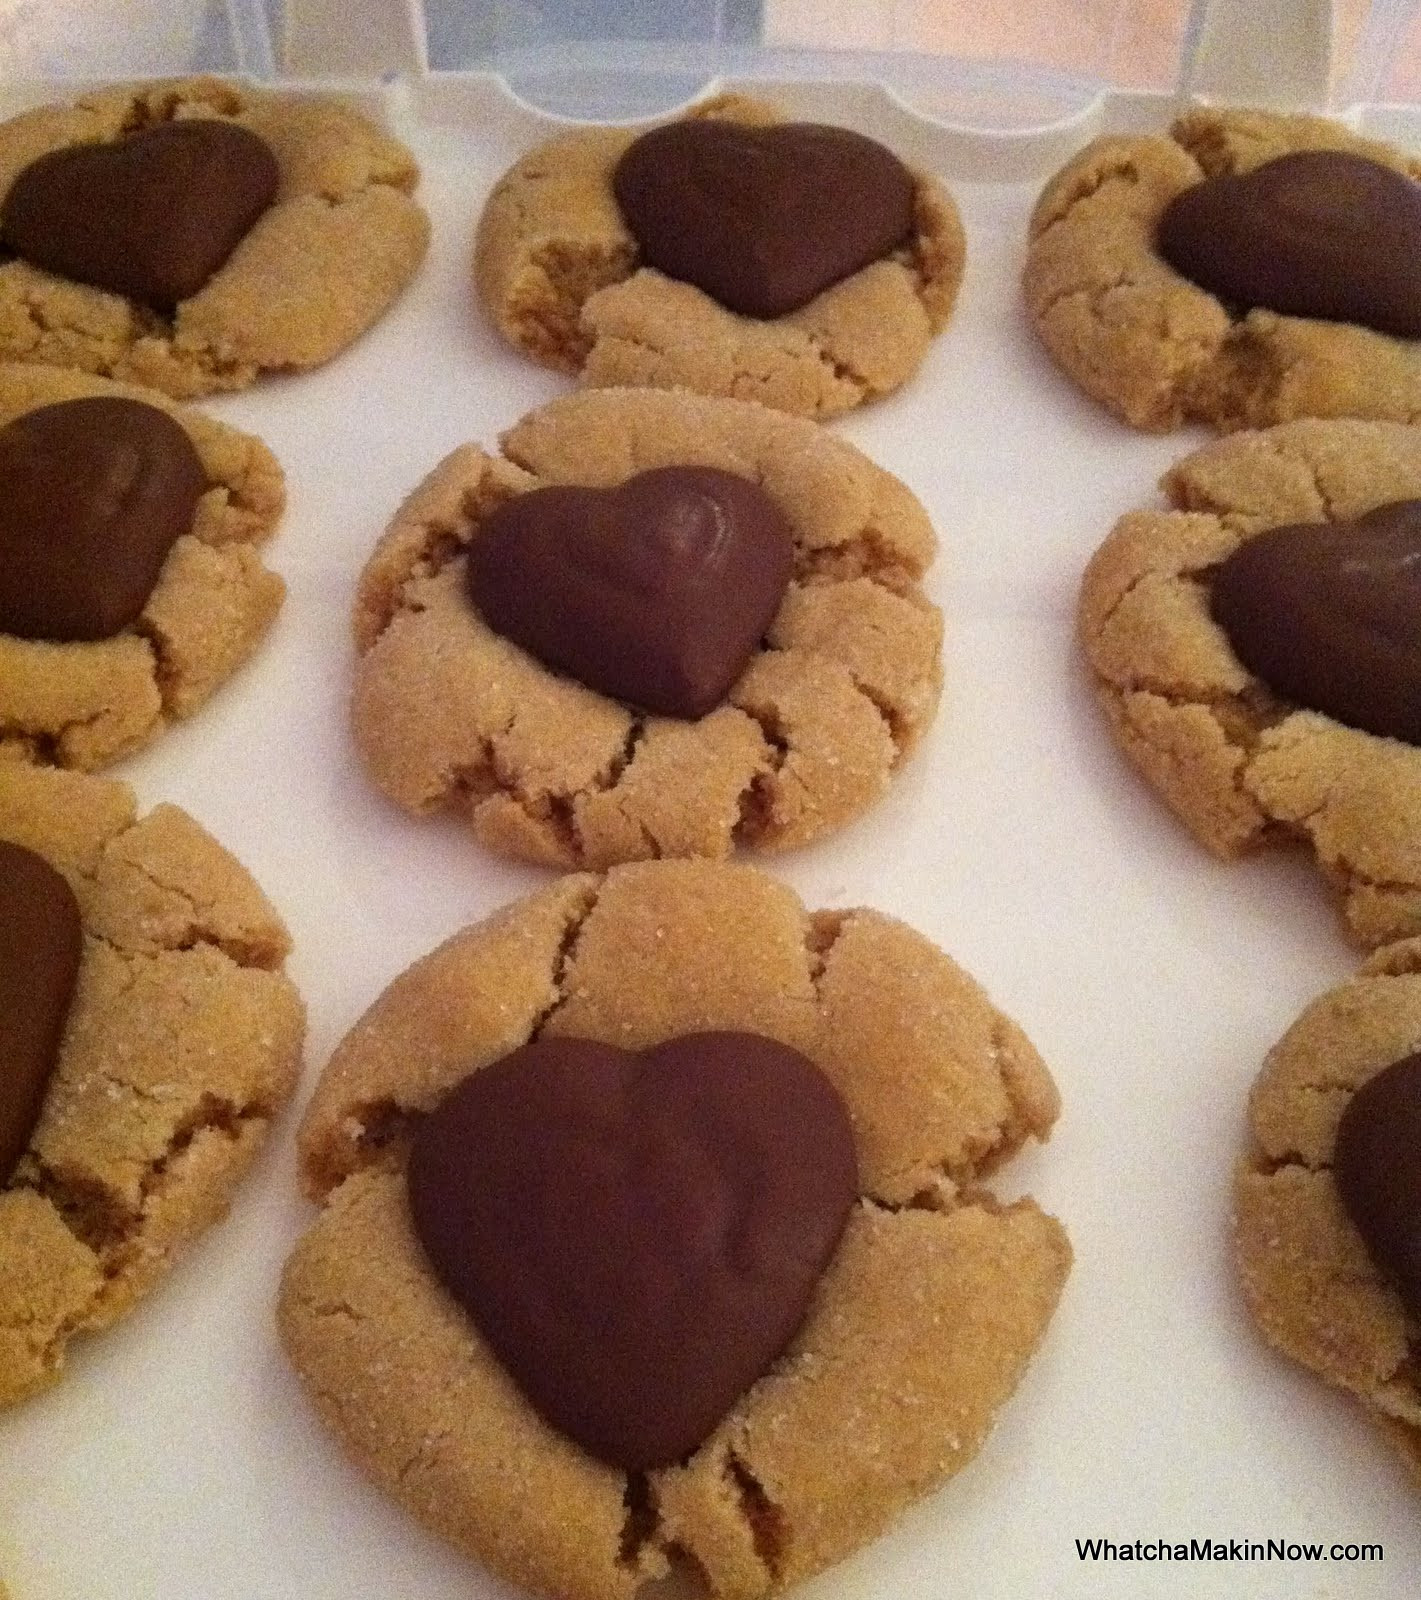 Peanut Butter Cookies With Kisses  Whatcha Makin Now Chocolate Kiss Cookies Peanut Butter